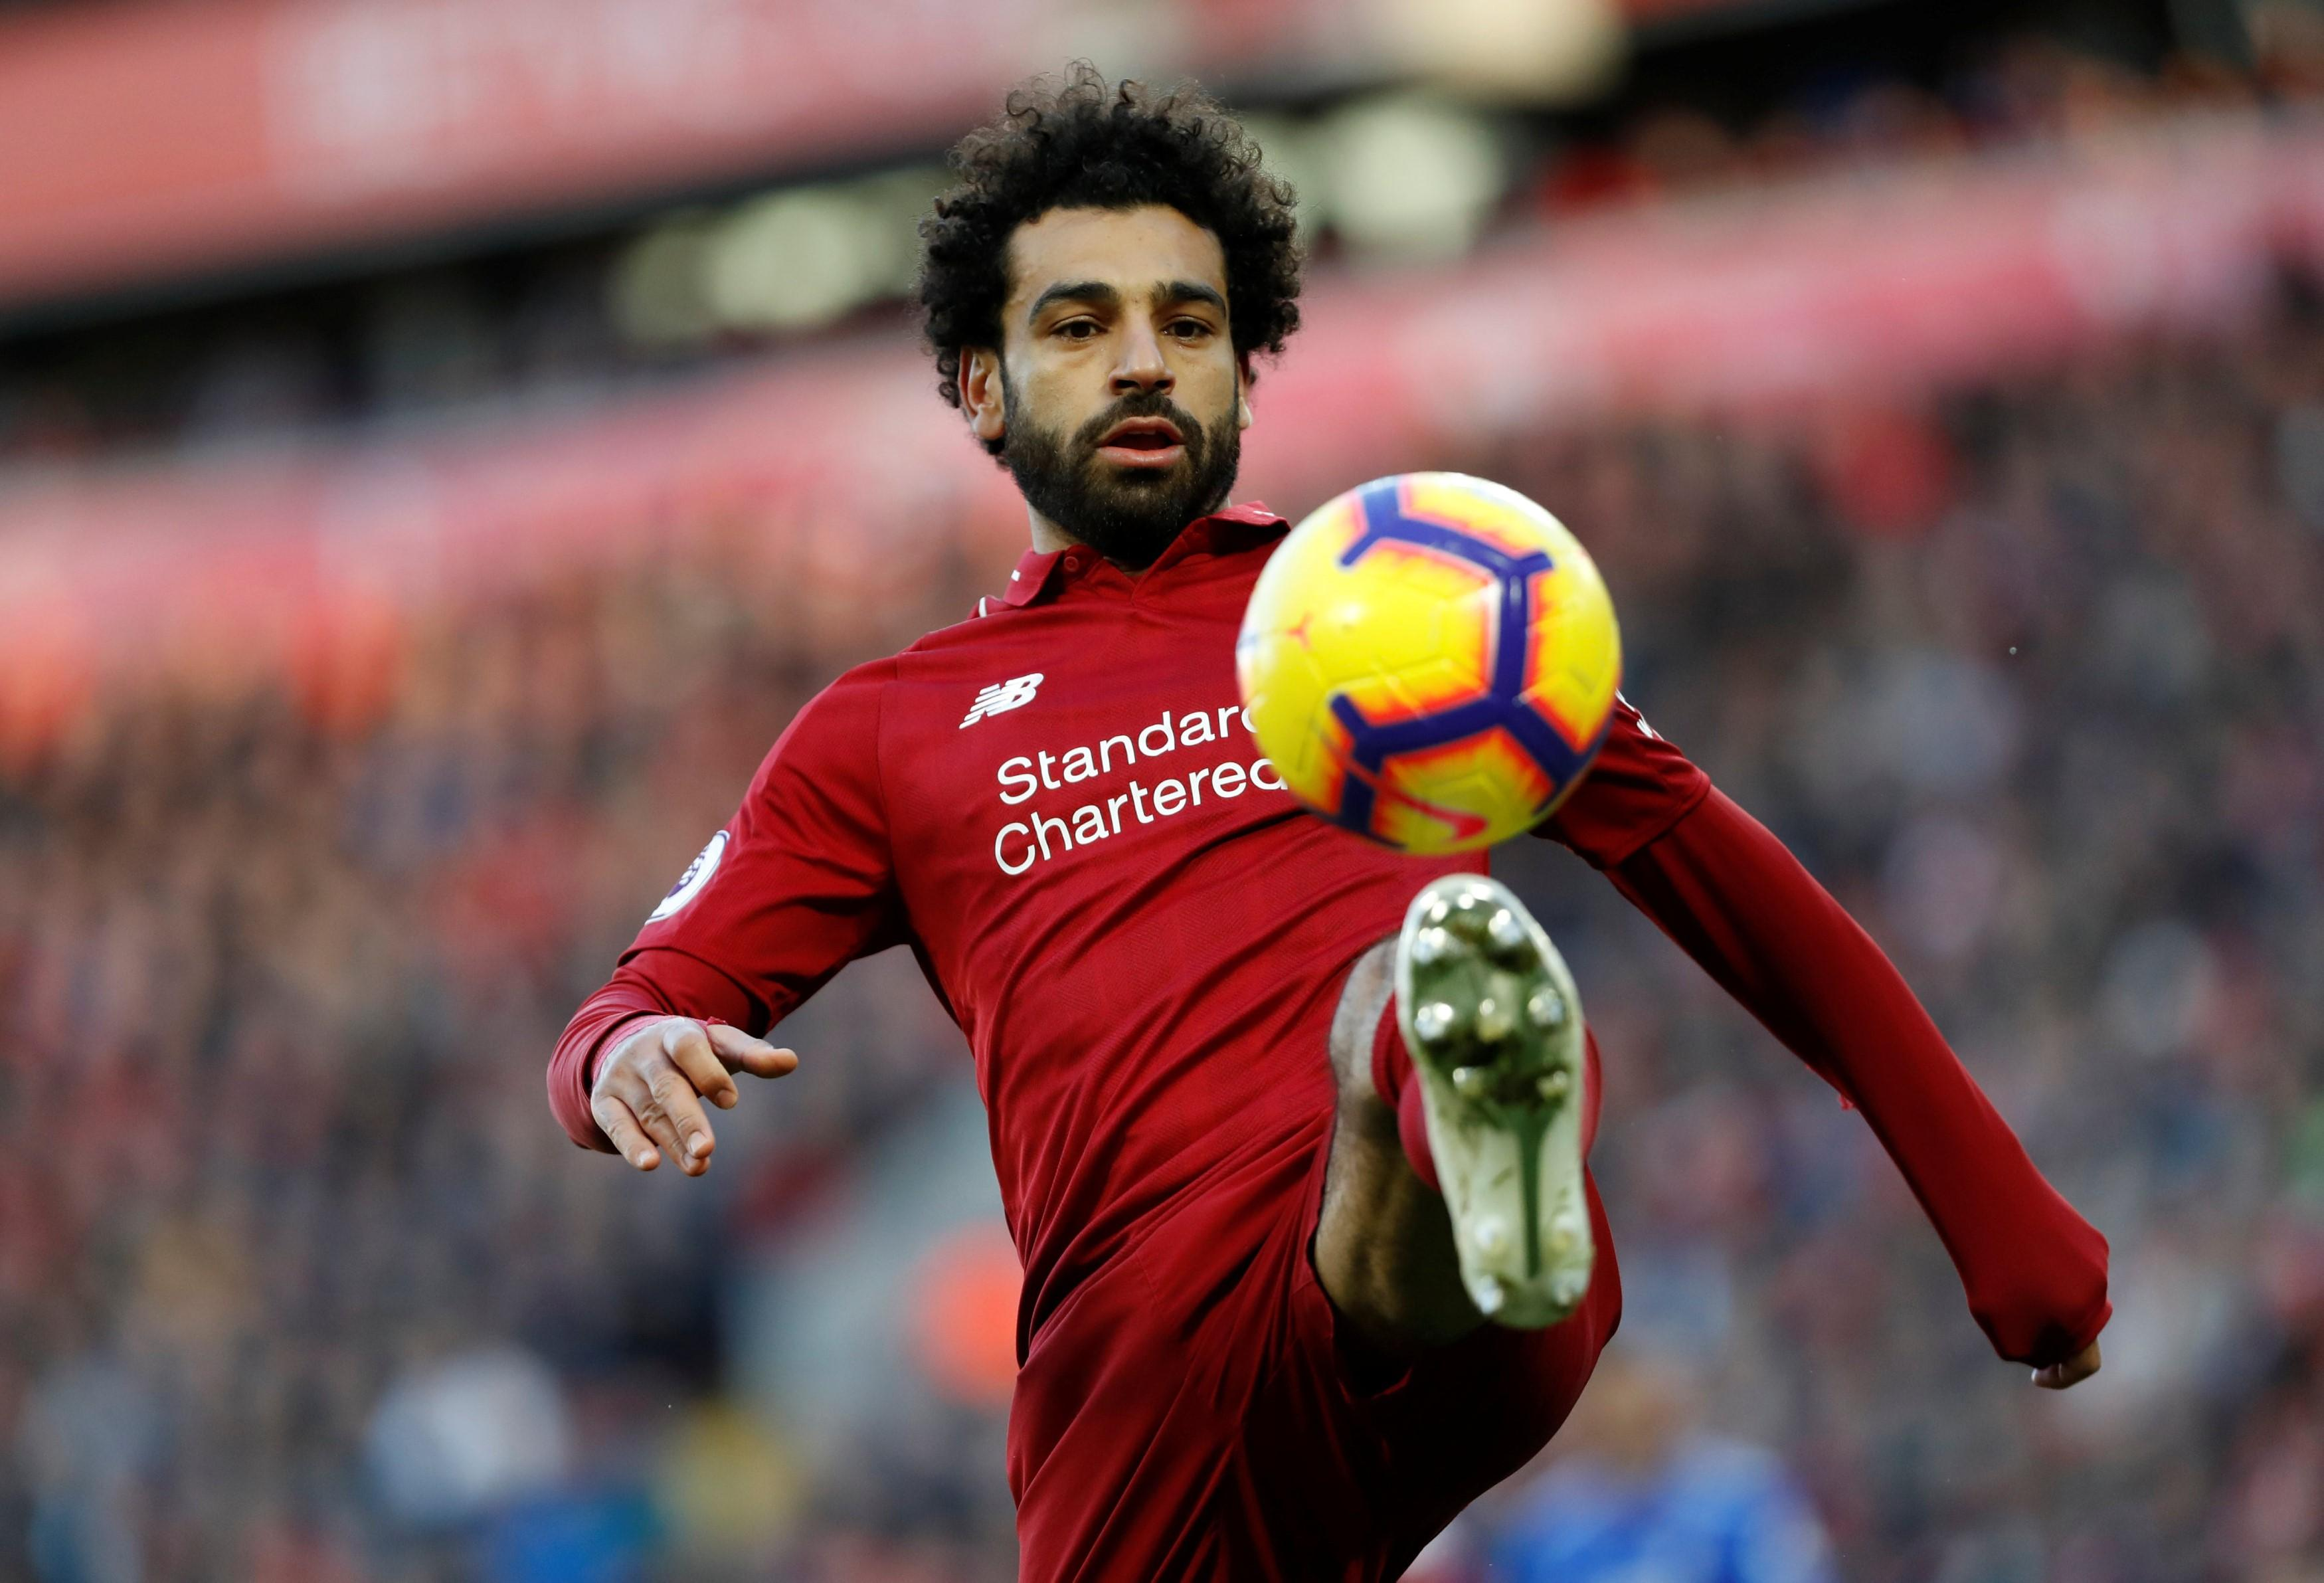 GW10 Lessons: Salah boosted by new role